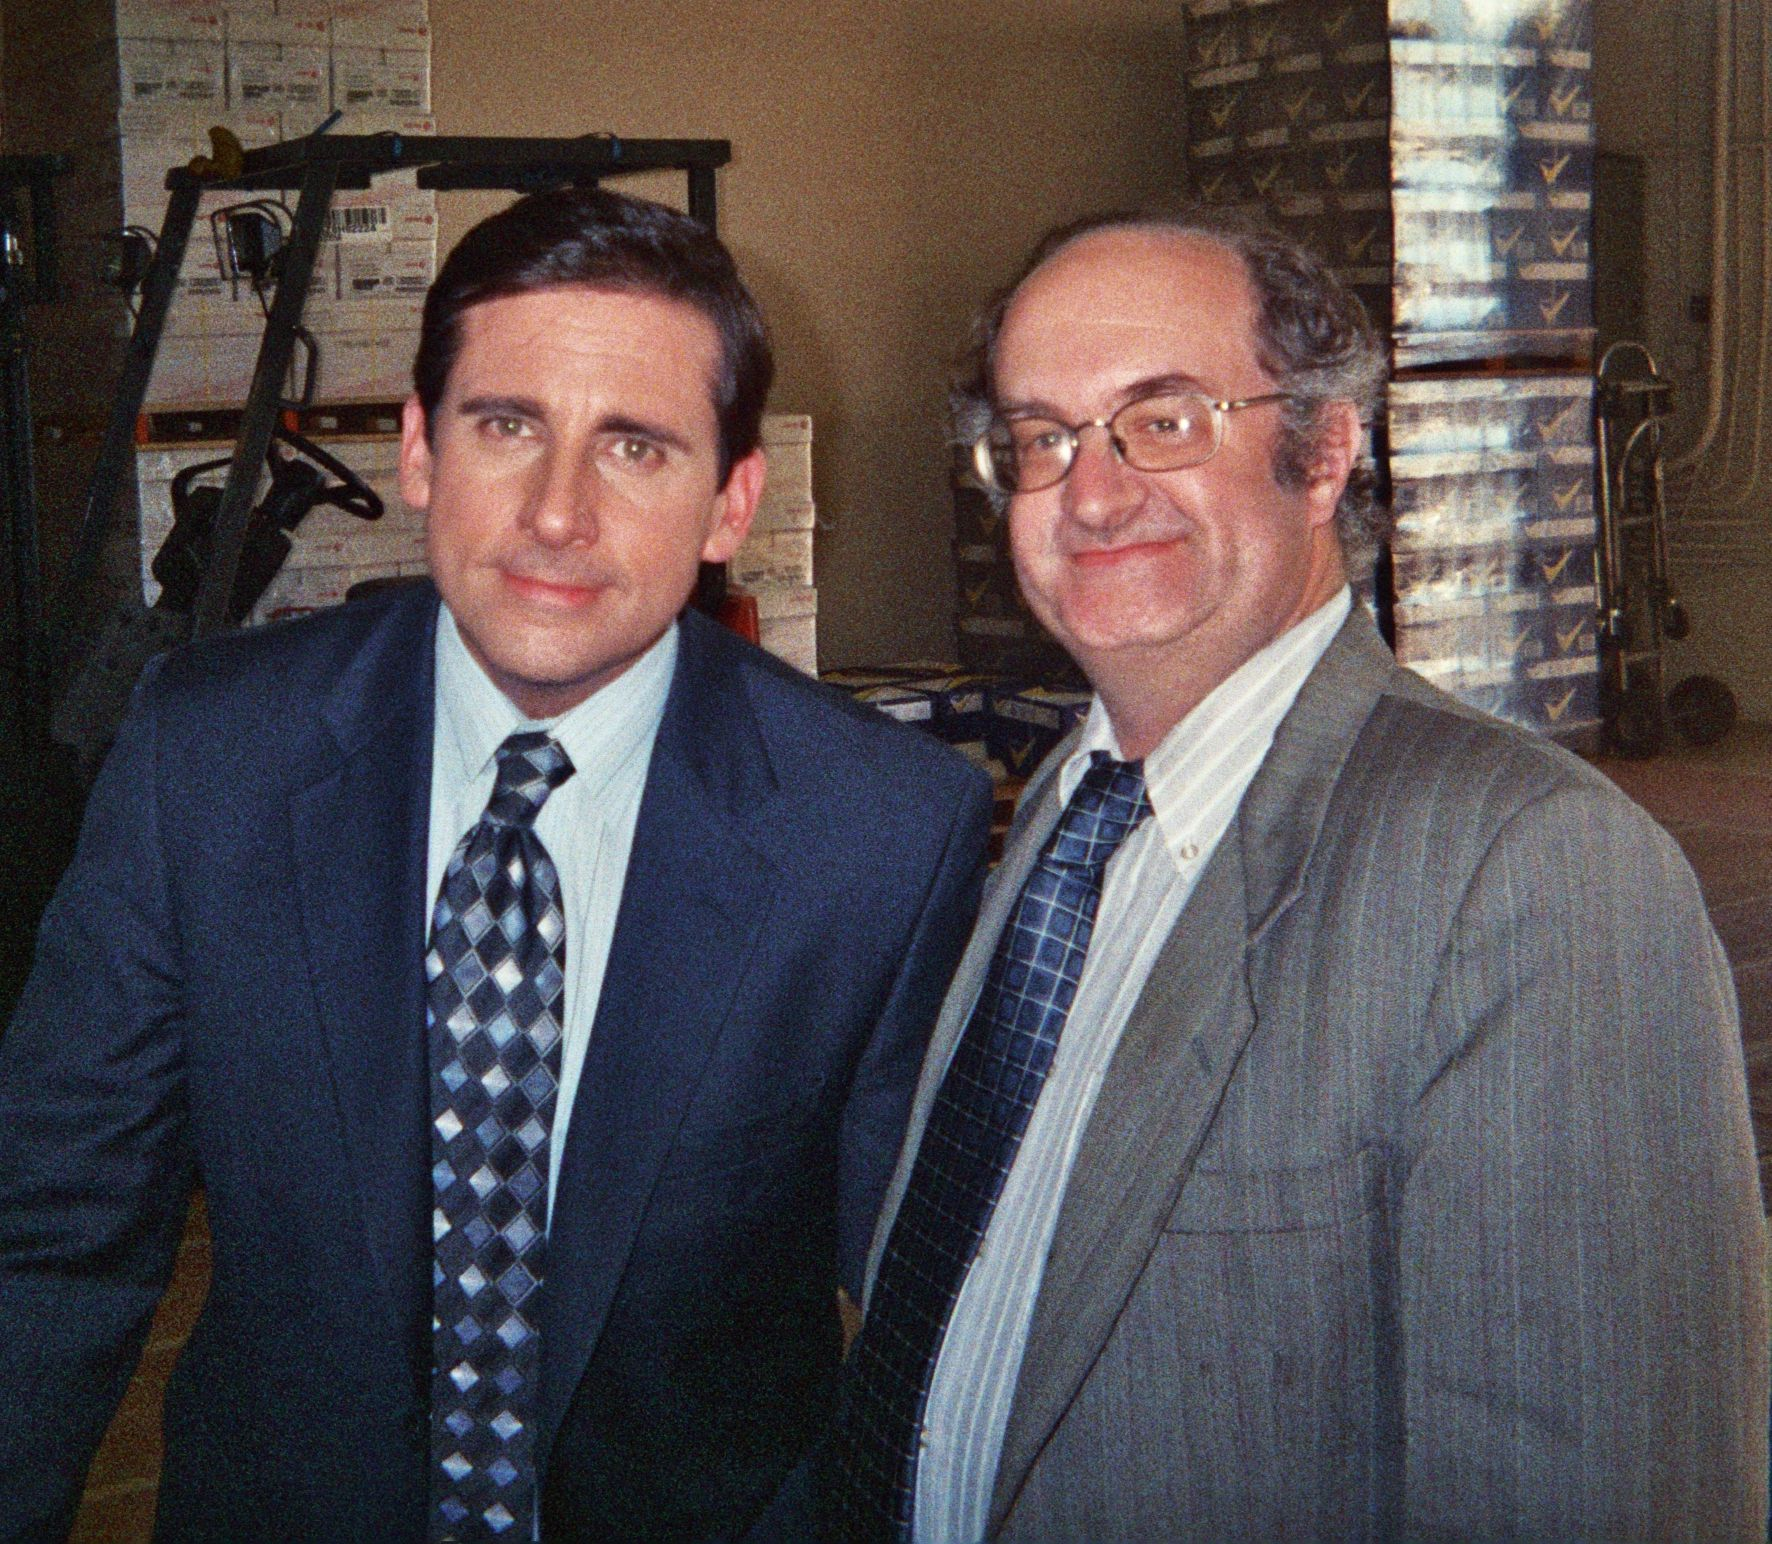 Geoffrey Gould with Steve Carell at ''The Office'' shoot